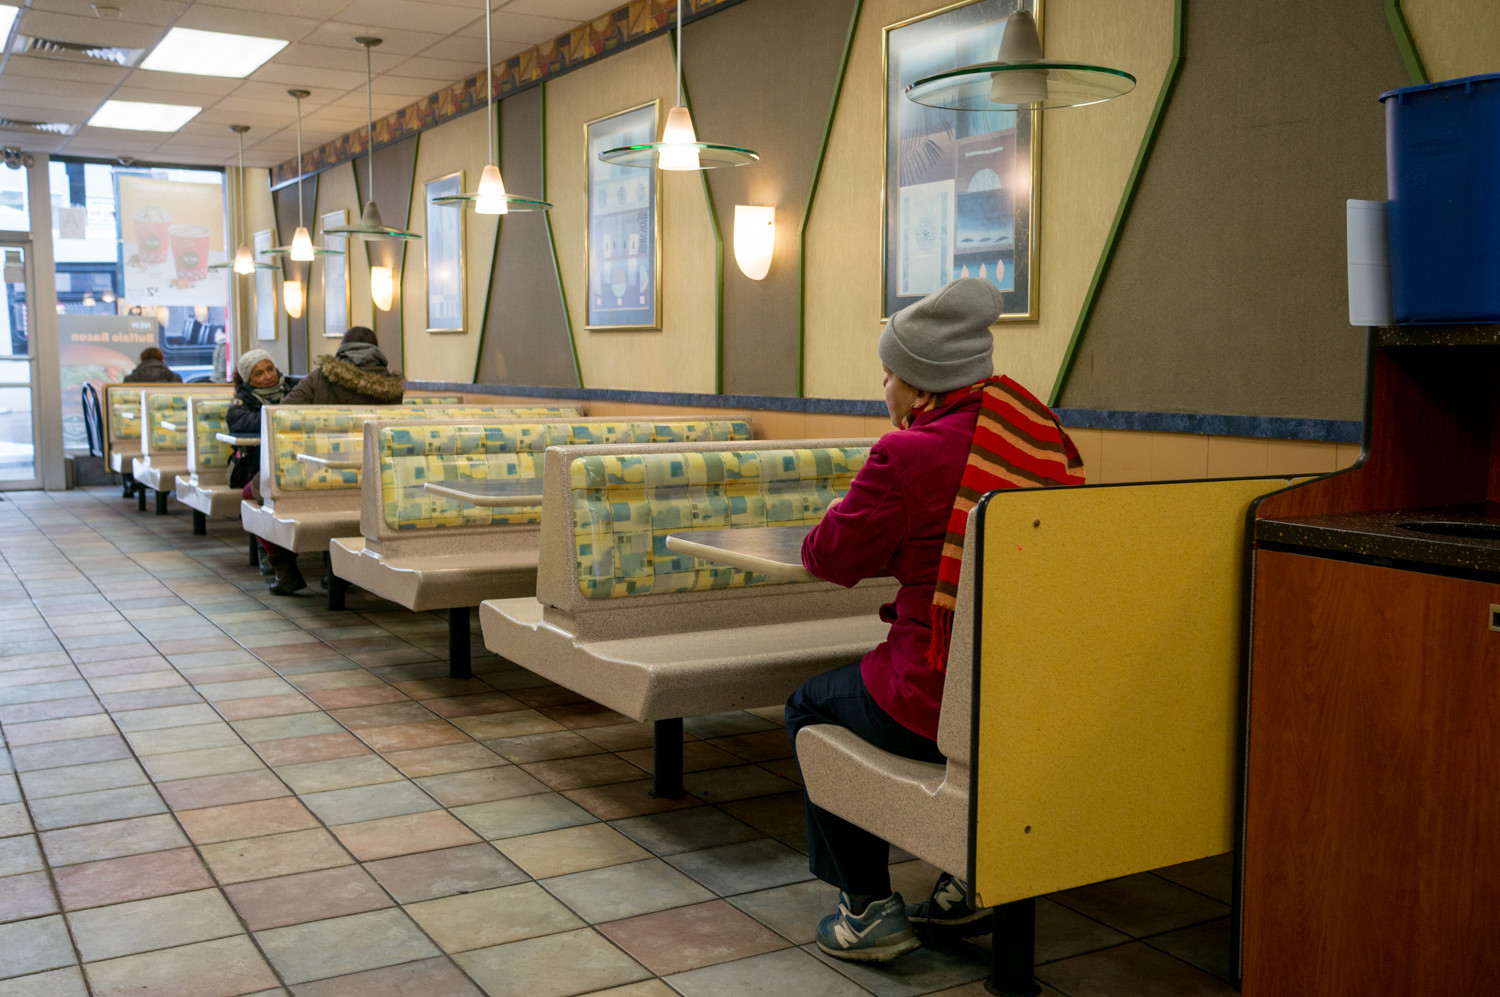 Customers sit inside the McDonald's at 5201 Broadway in Marble Hill, which has been a fixture of the neighborhood for more than 15 years. It closed Monday.